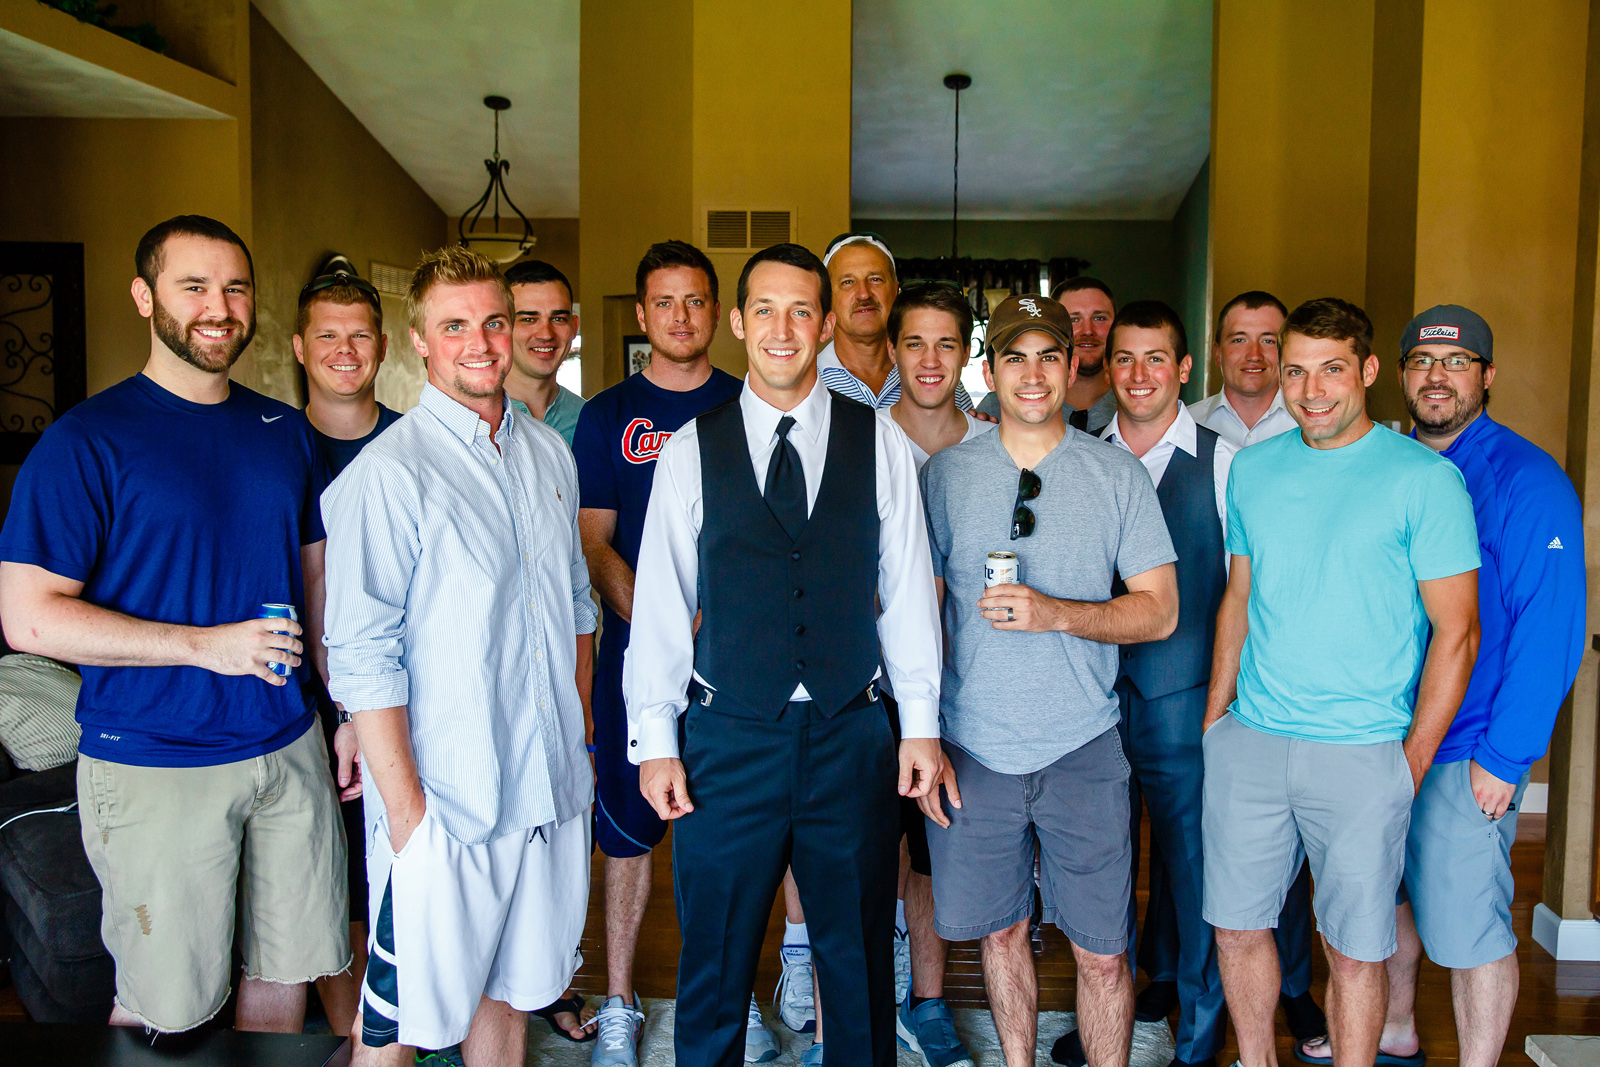 Millstadt Bridal Party Photos with St. Louis Wedding Photographers by Oldani Photography 3.jpg